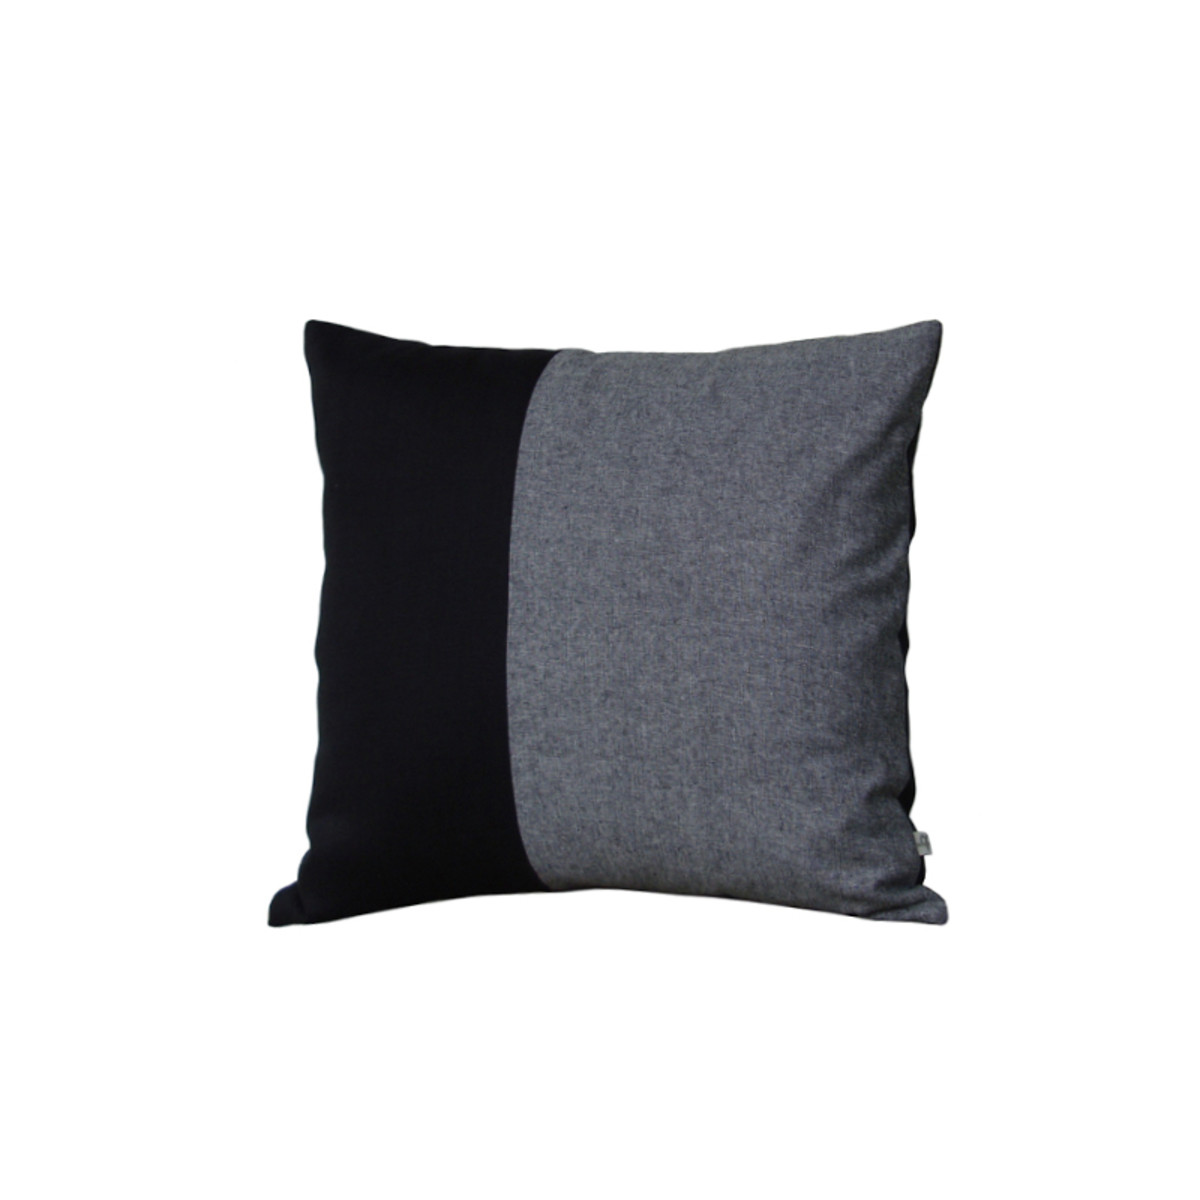 Chambray-Black-Colorblocked-Pillow2-TRNK